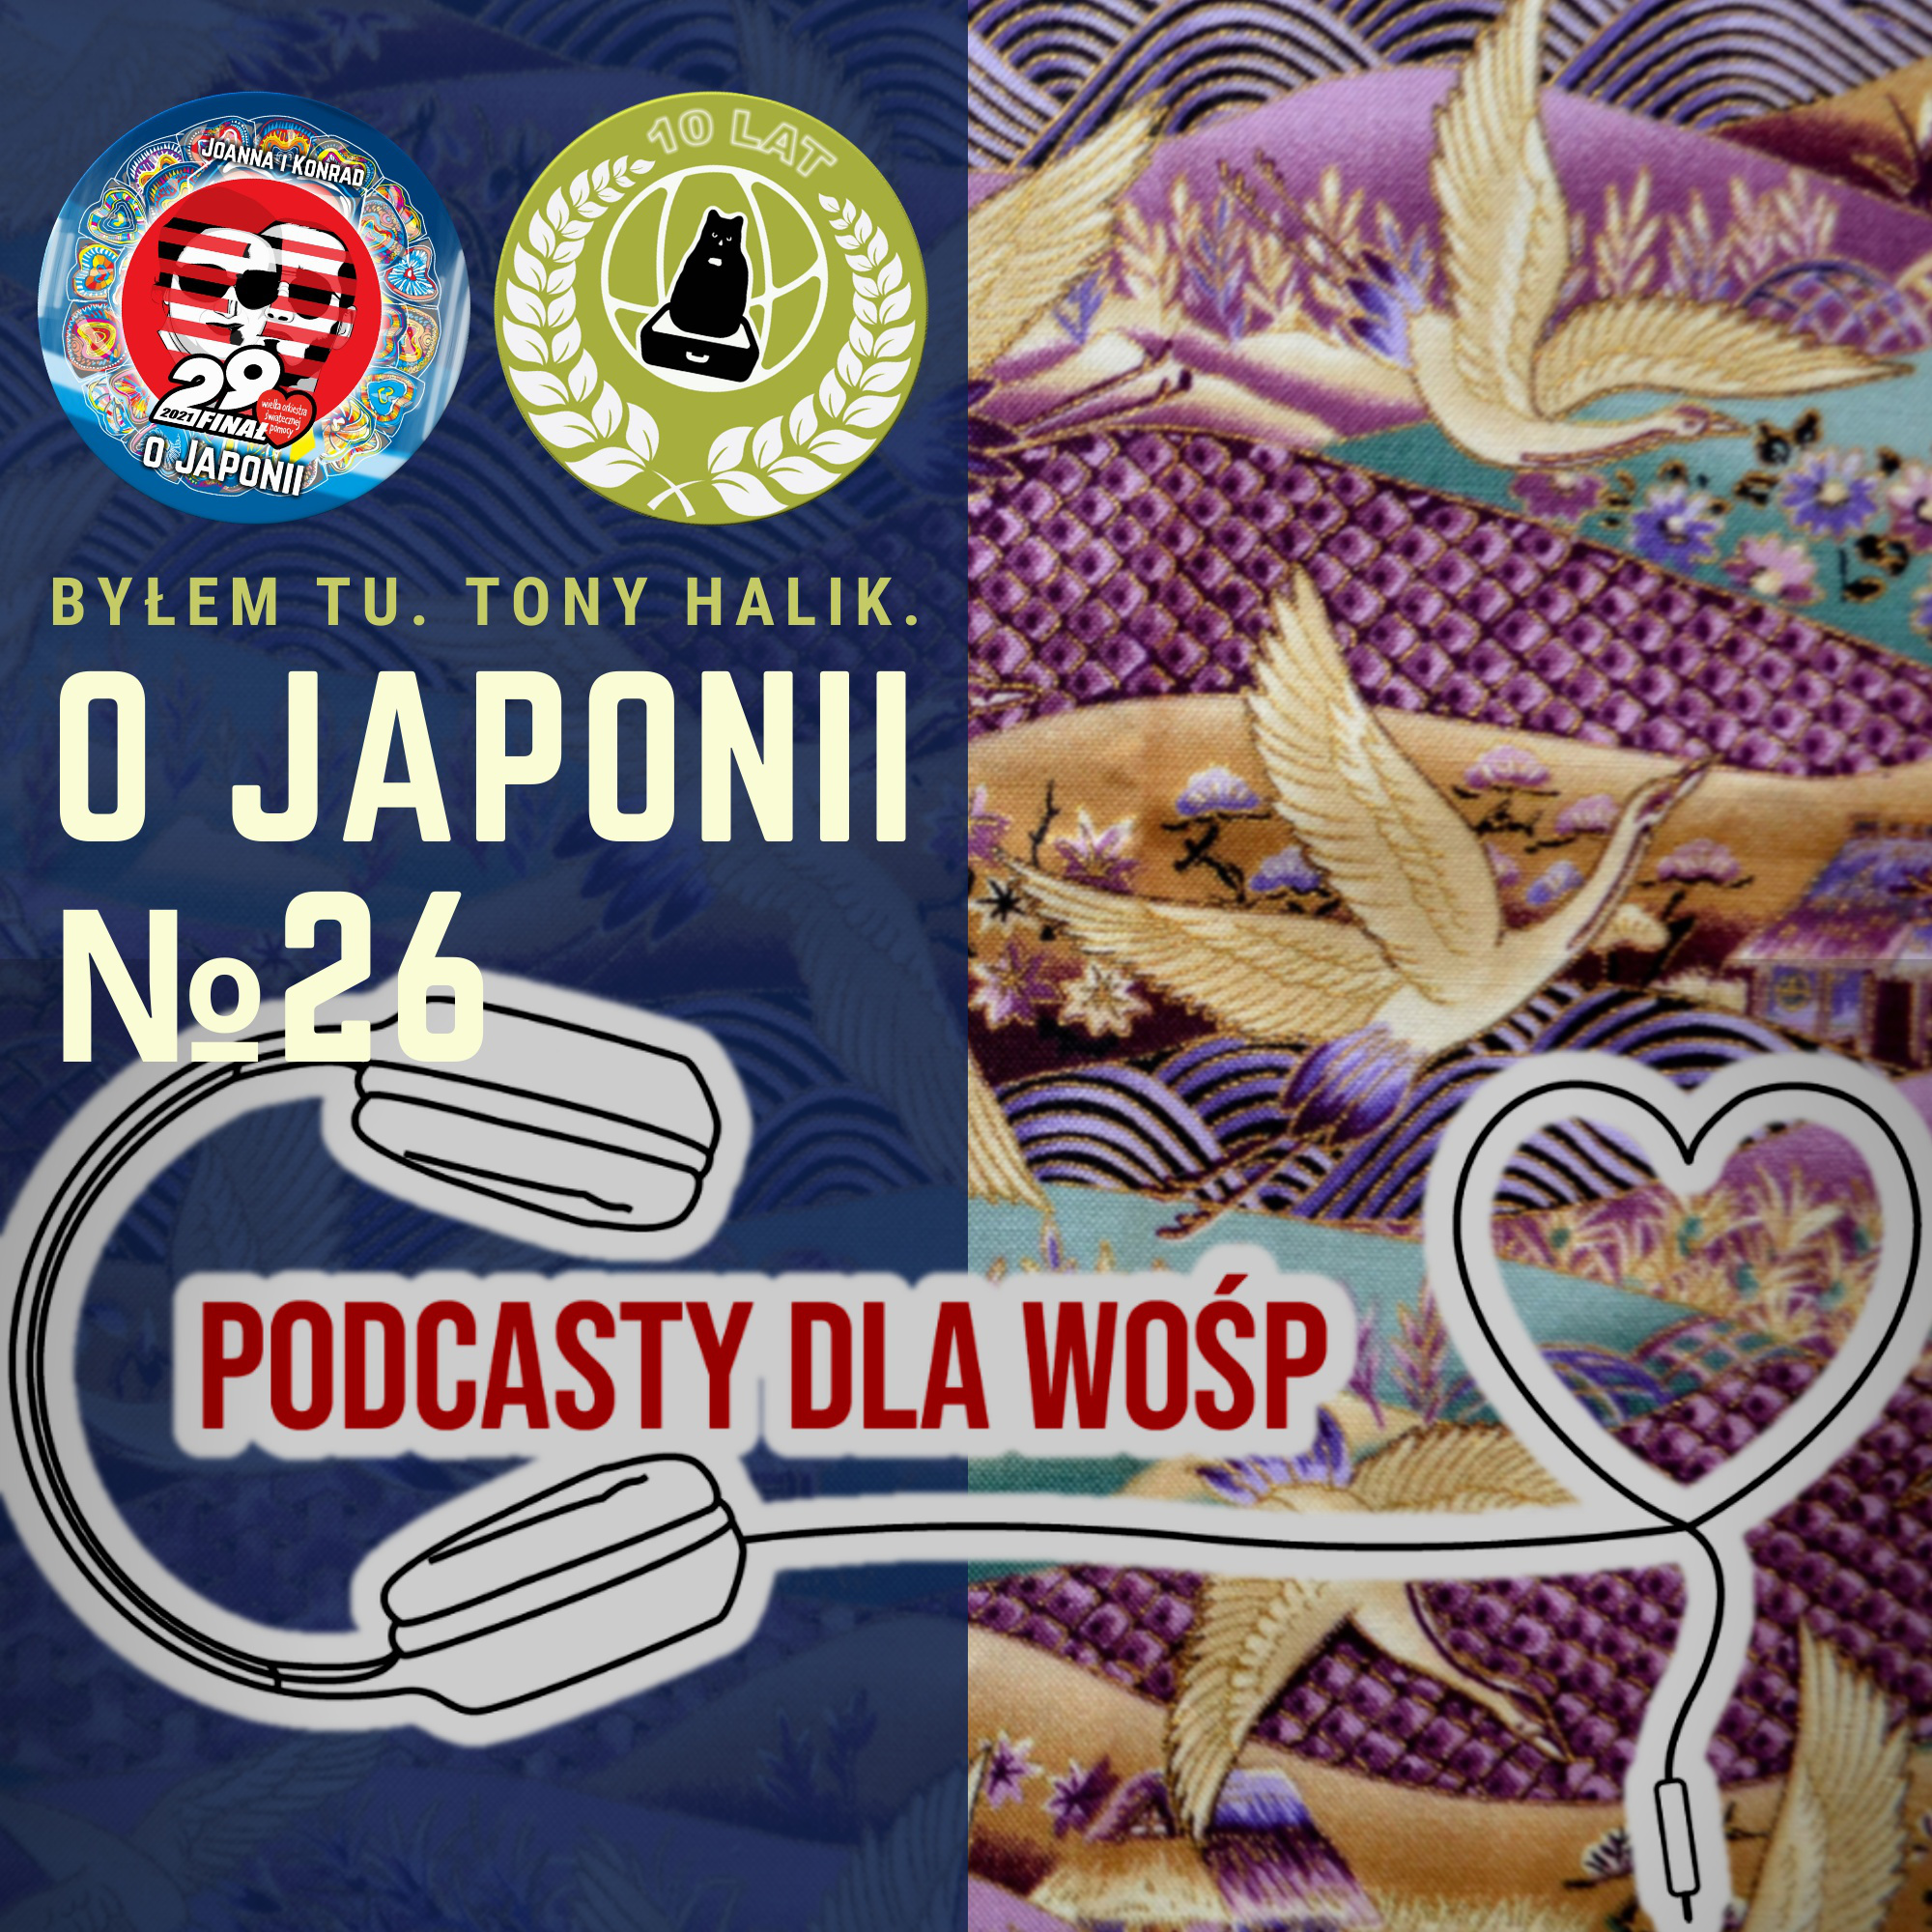 Podcast o Japonii №26 (O Japonii X WOŚP #29final #podcastydlawosp)